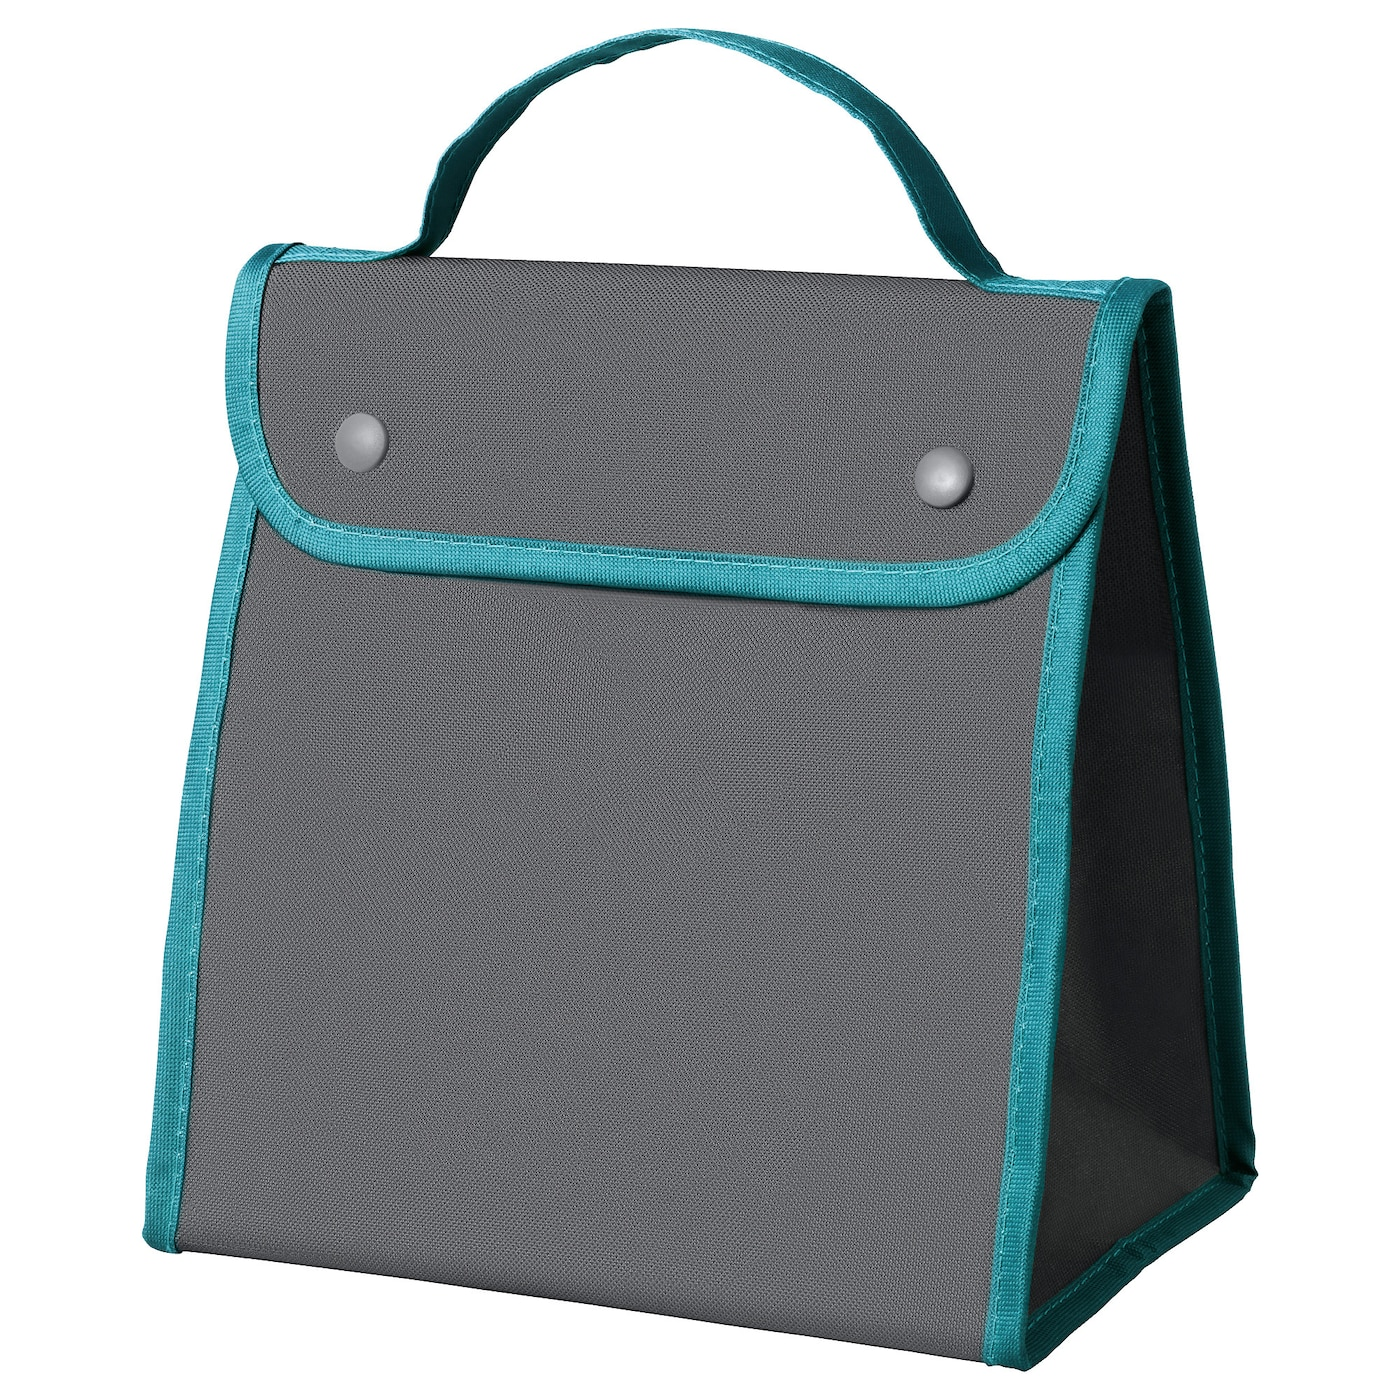 IKEA ERFORDERLIG lunch bag Foldable, which makes it easy to store.